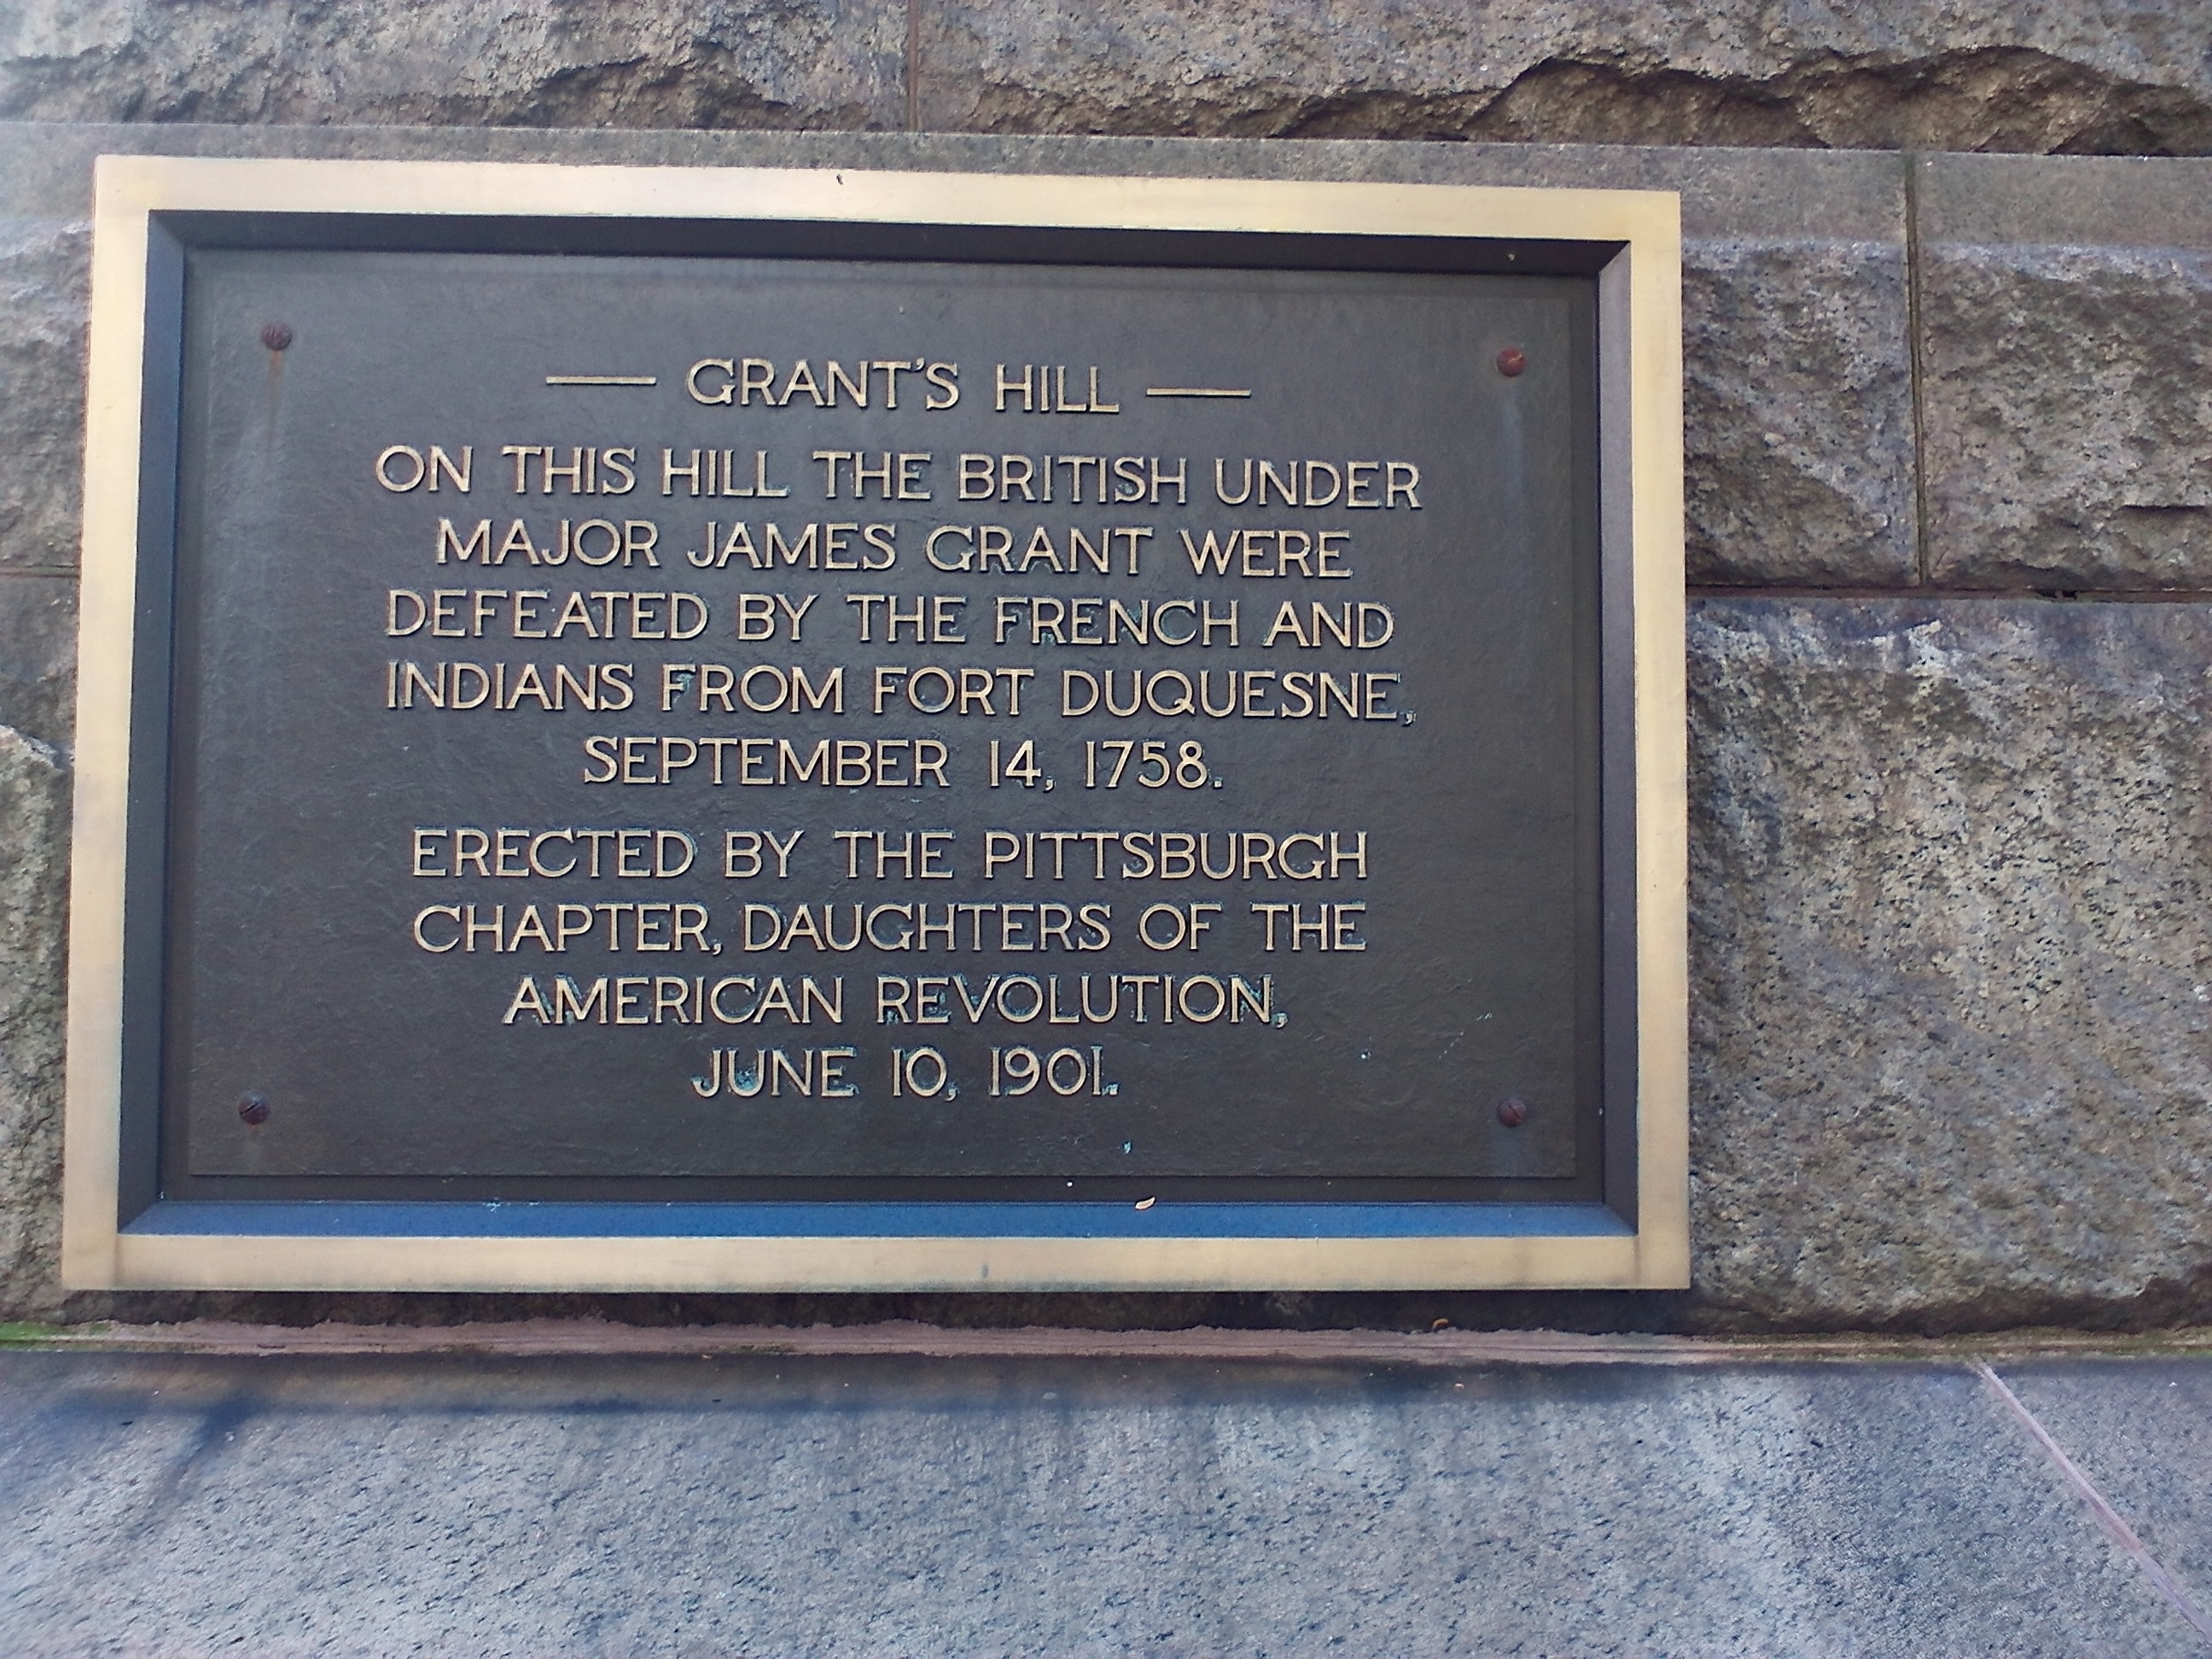 Historic Marker commemorating the battle of September 14, 1758, located on the Allegheny County Courthouse, corner of Grant Street and Fifth Avenue, Pittsburgh, PA 15219.